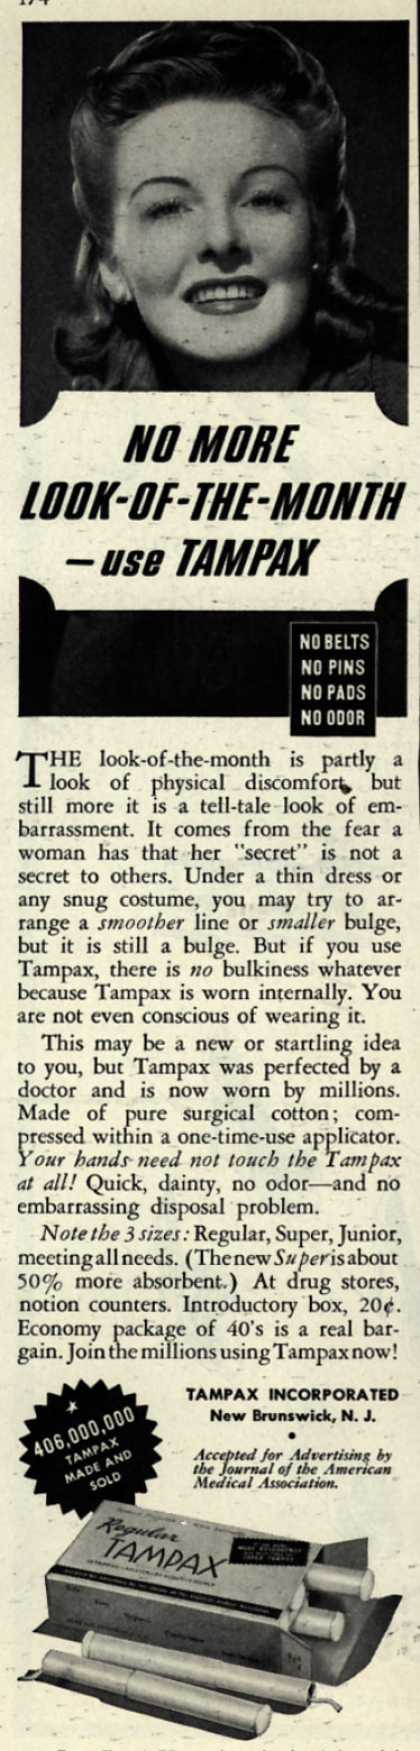 Tampax's Tampons – No More Look-Of-The-Month-use TAMPAX (1942)